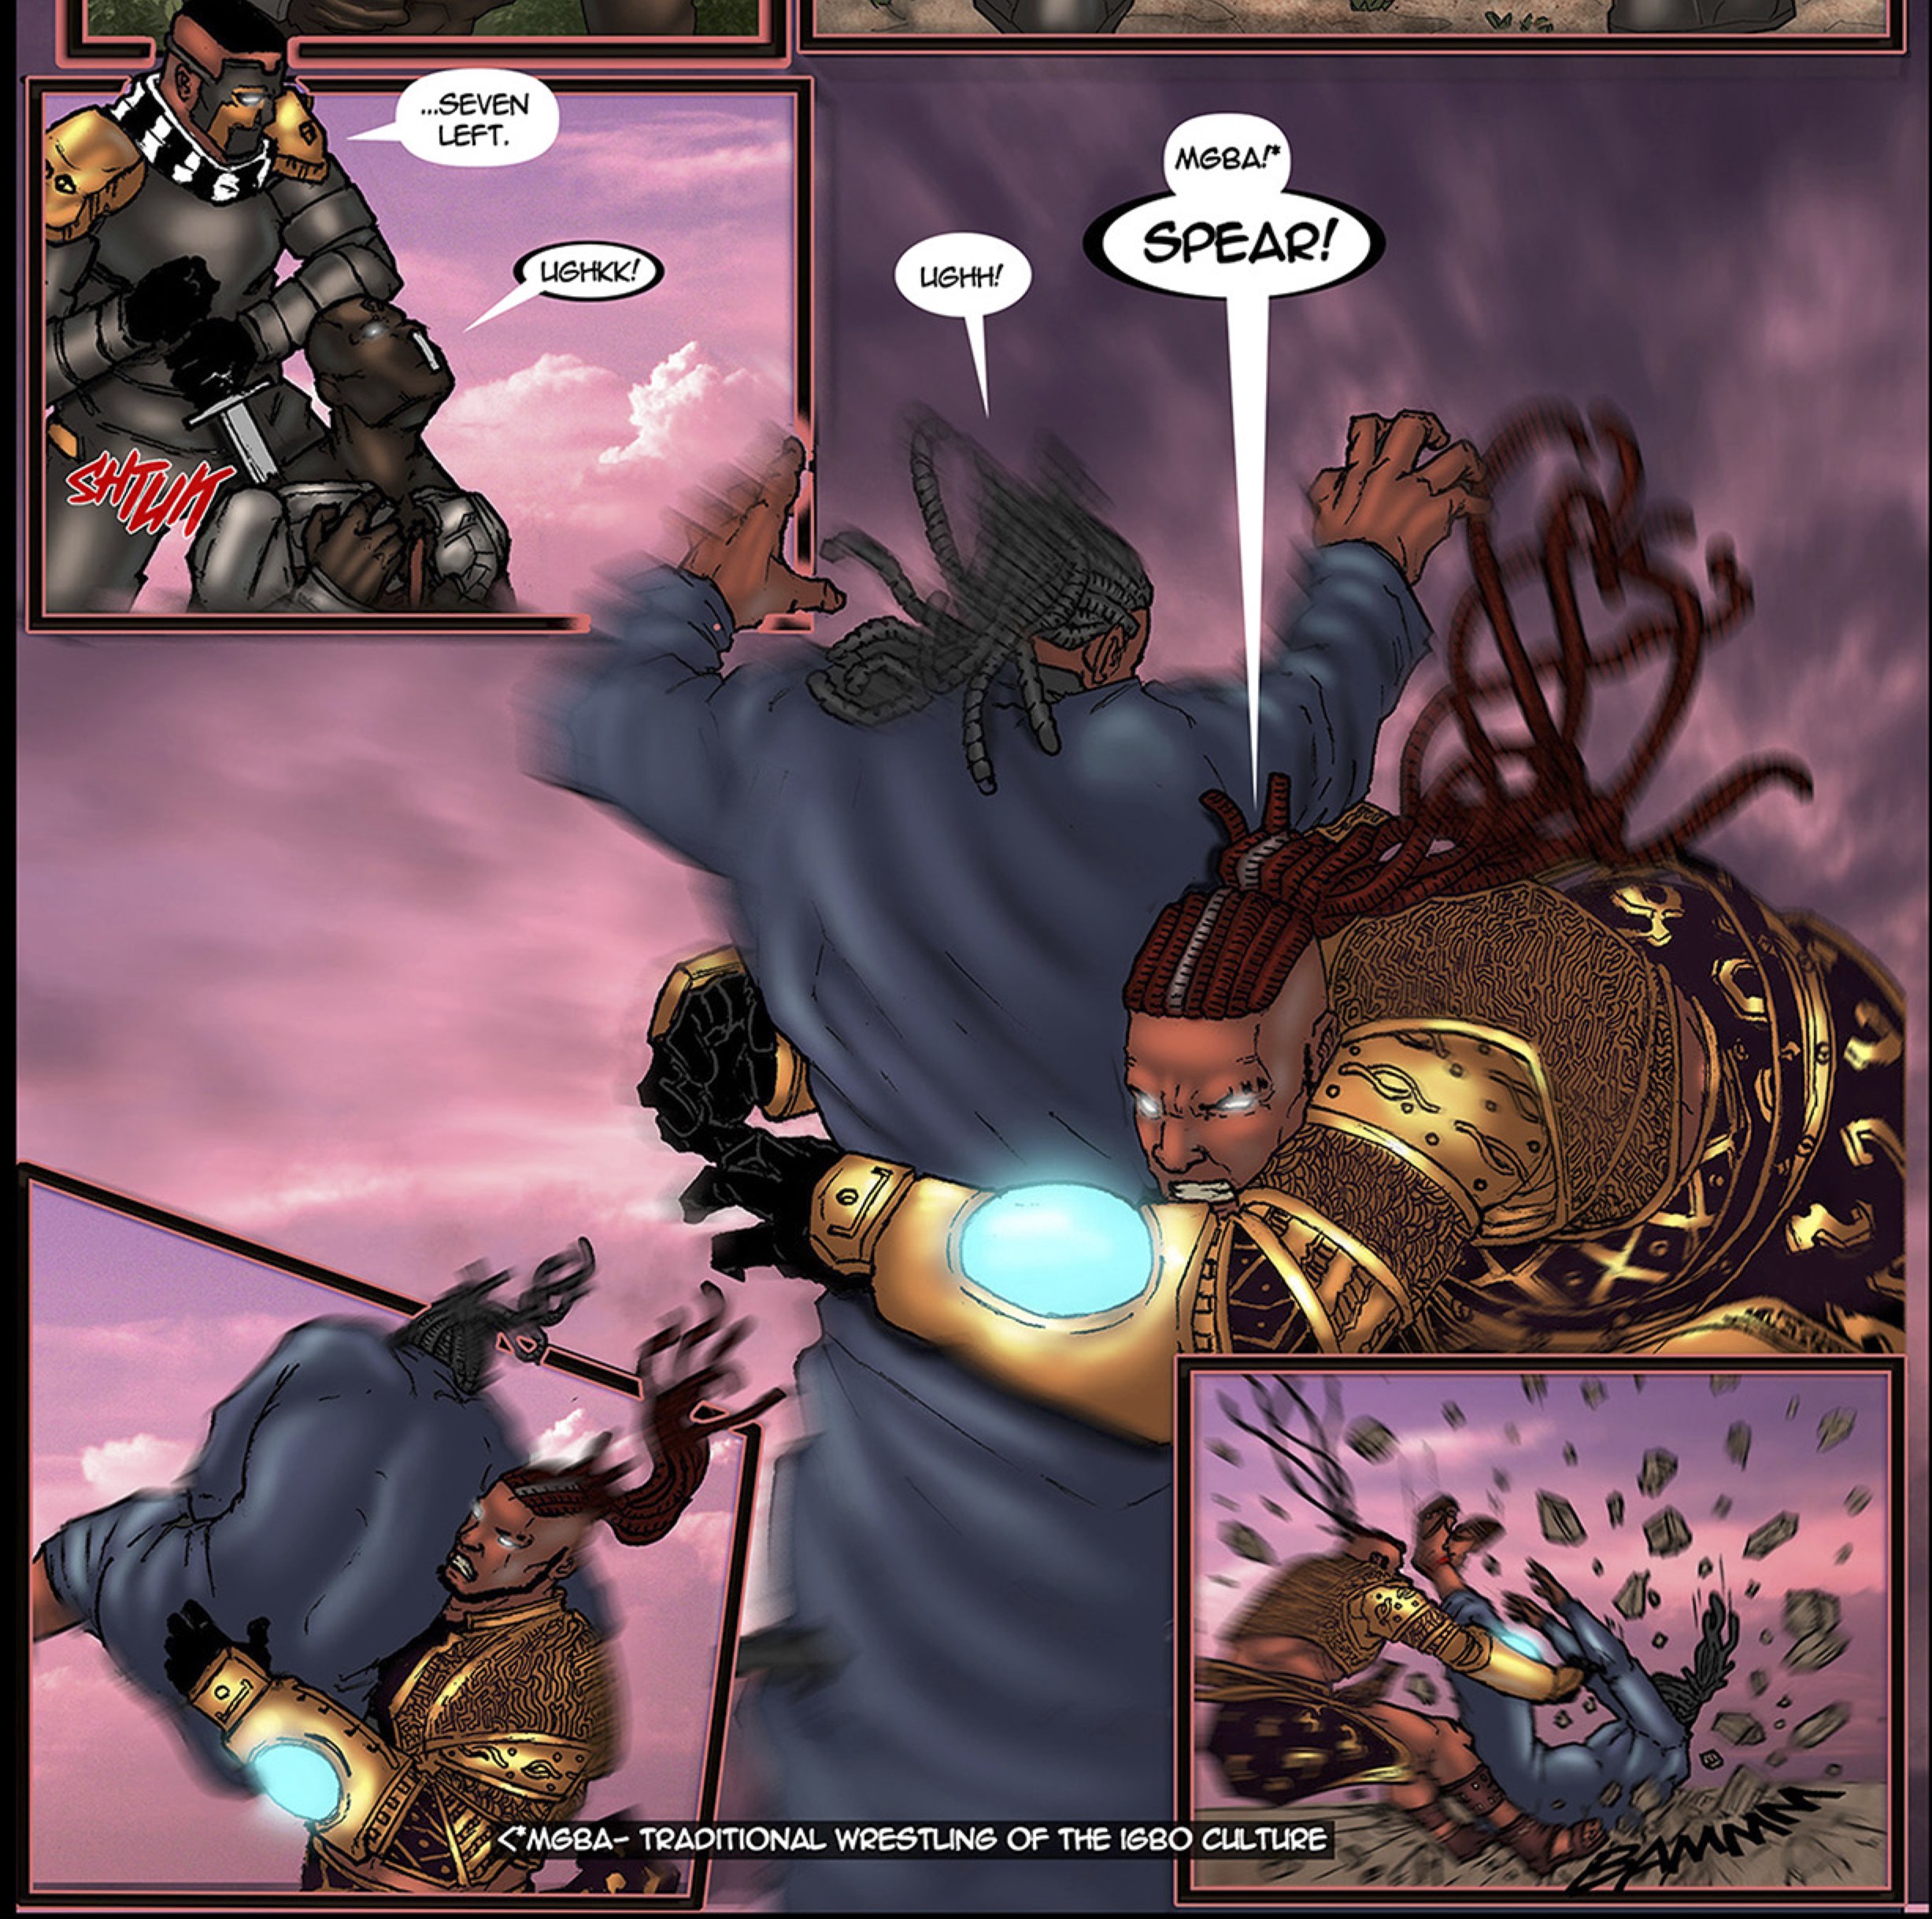 Alaric fighting attackers with the Mgba martial art style in this African Comic, Scion: Immortal published by Comic Republic